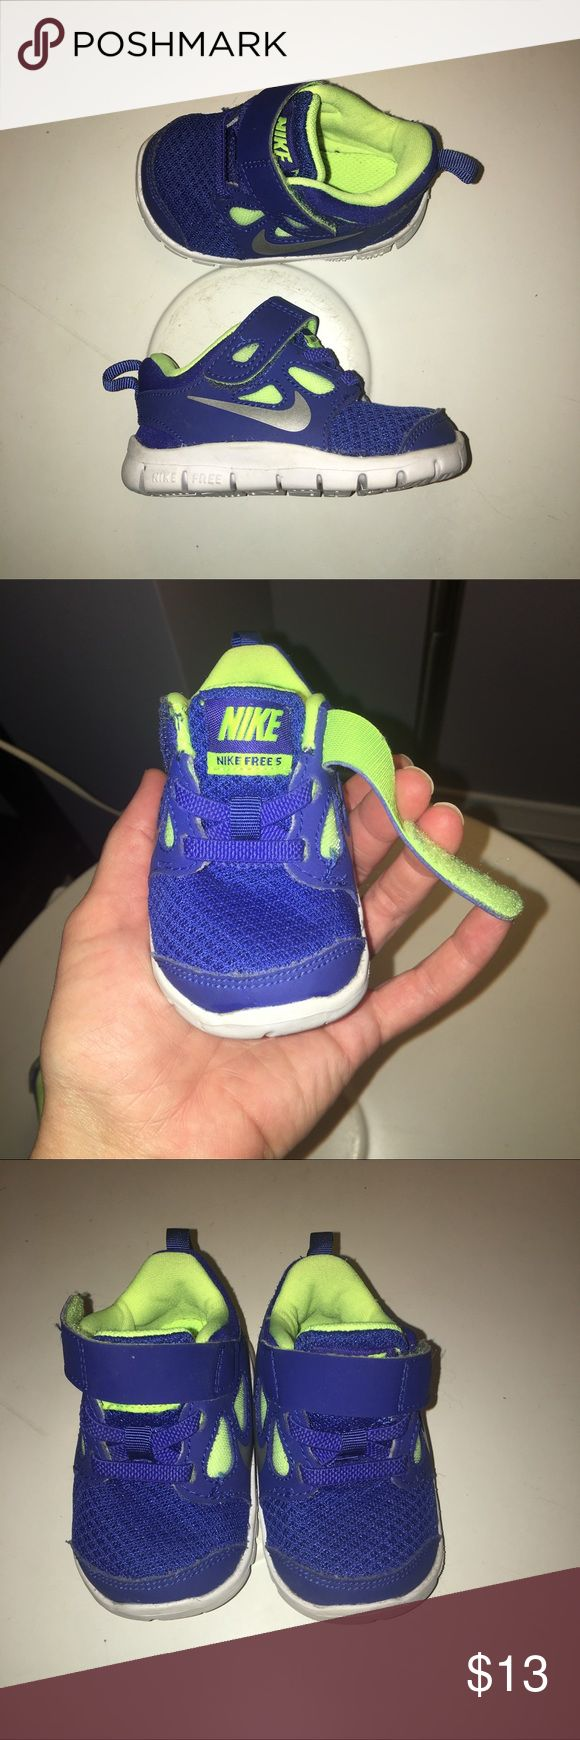 Best 25 Baby Nike Shoes Ideas On Pinterest Baby Nike